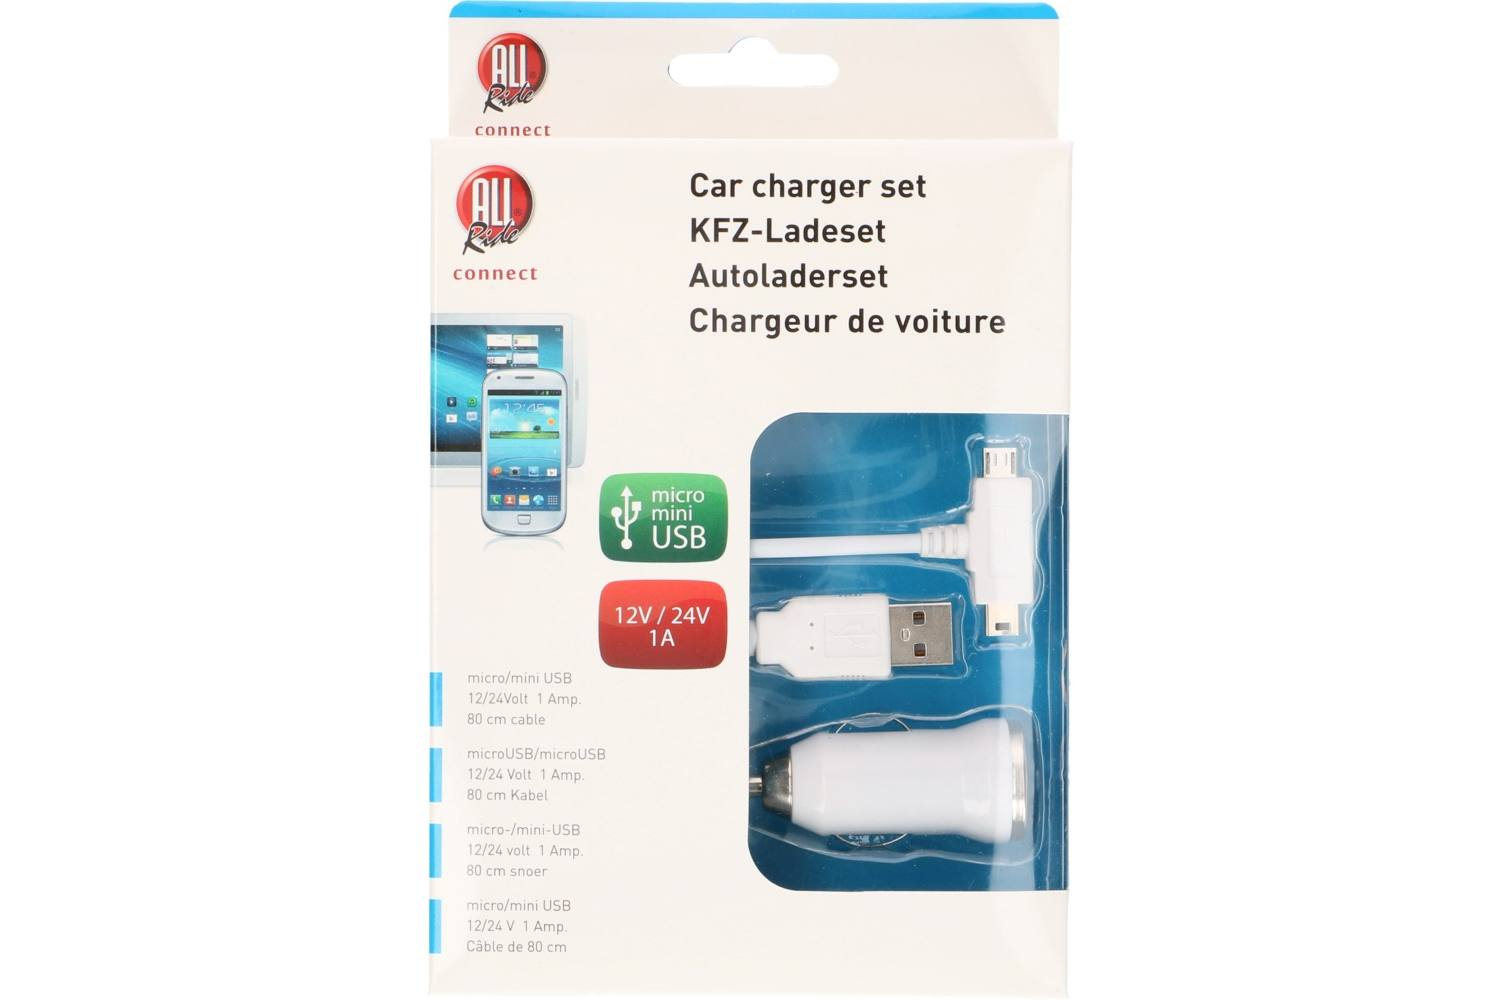 Chargeur allume-cigare et câble usb, AllRide Connect, micro and mini usb 2